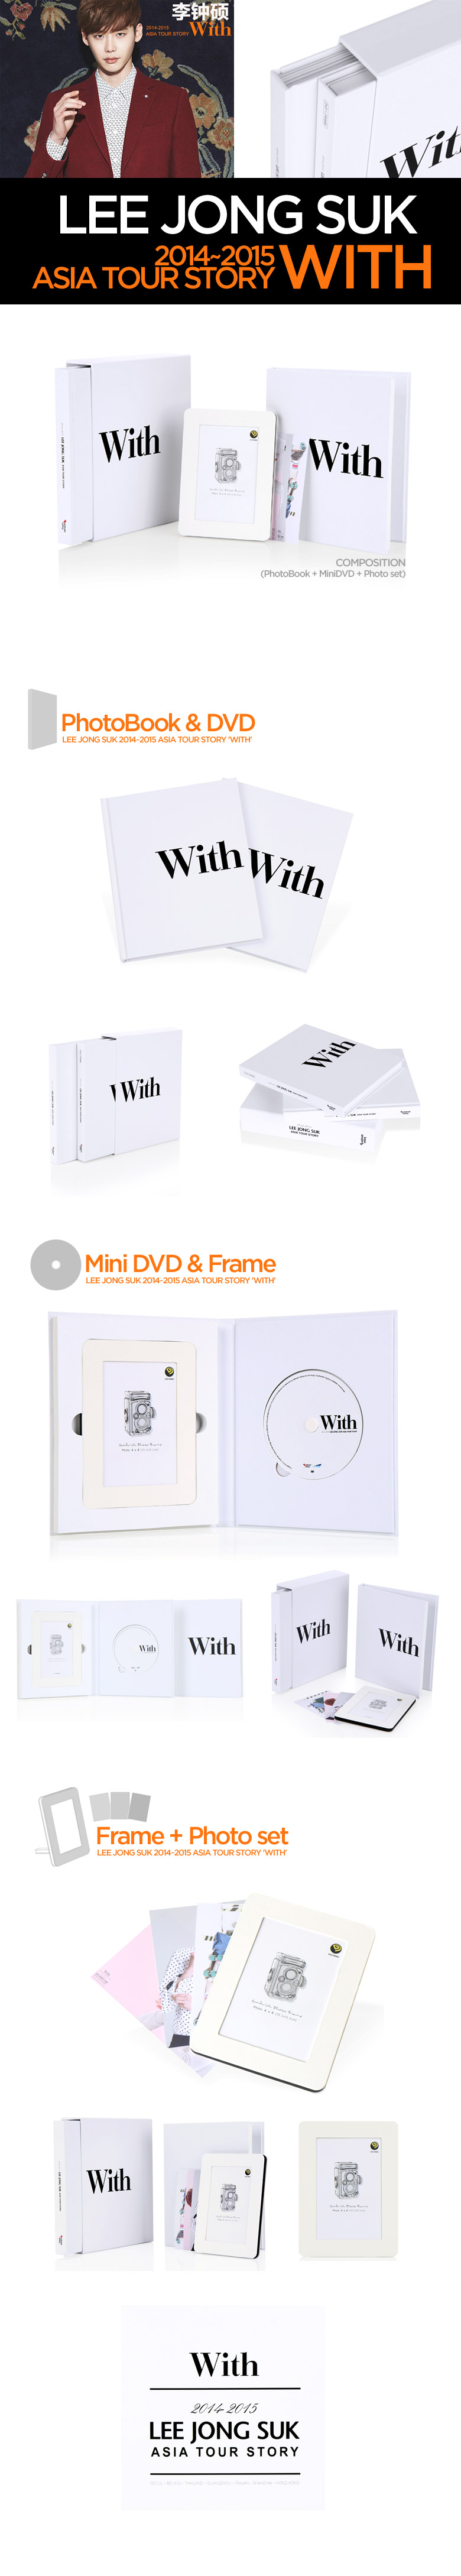 "LEE JONG SUK 2014-2015 ASIA TOUR STORY ""WITH"" Photobook + Mini DVD + Frame + Photo Set"